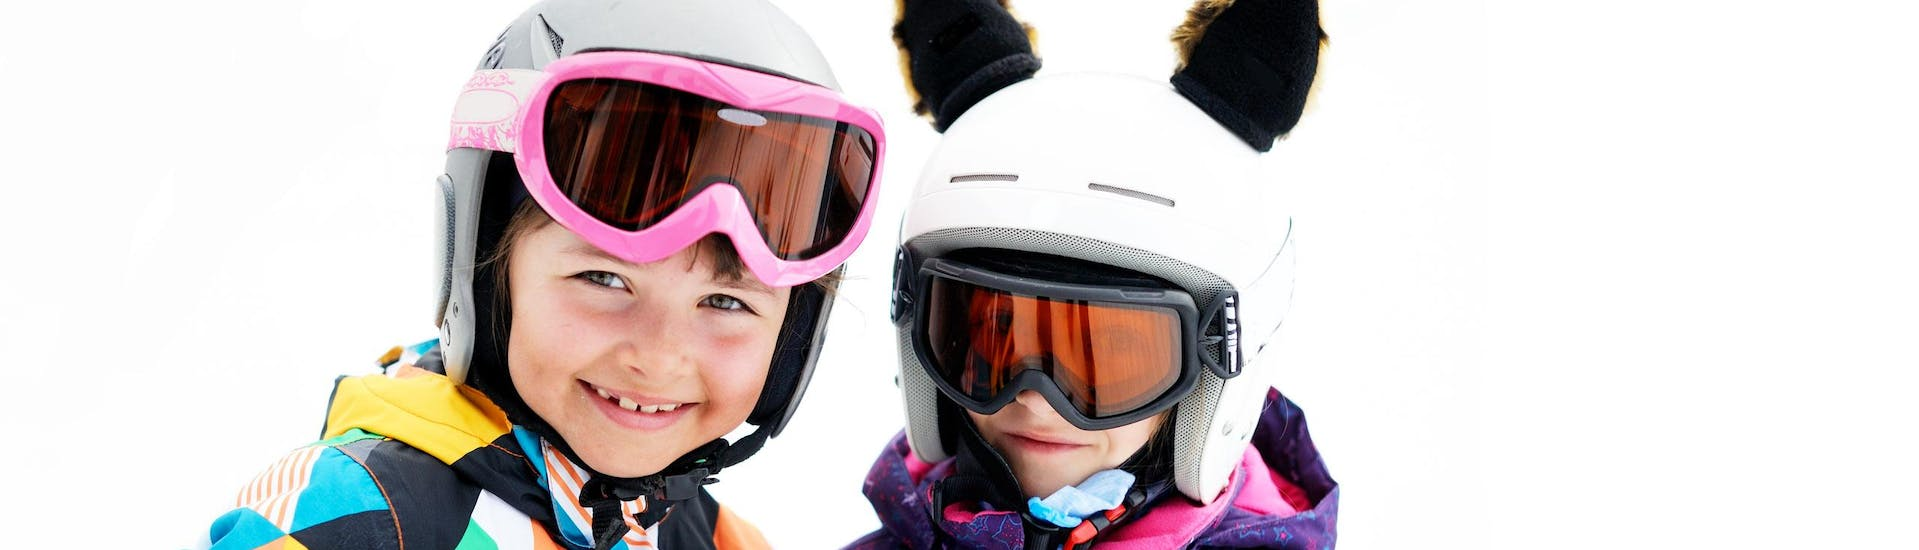 Two young children smiling at the camera during one of the Private Ski Lessons for Families of All Levels organised by Skischule Alpinsport Obergurgl.